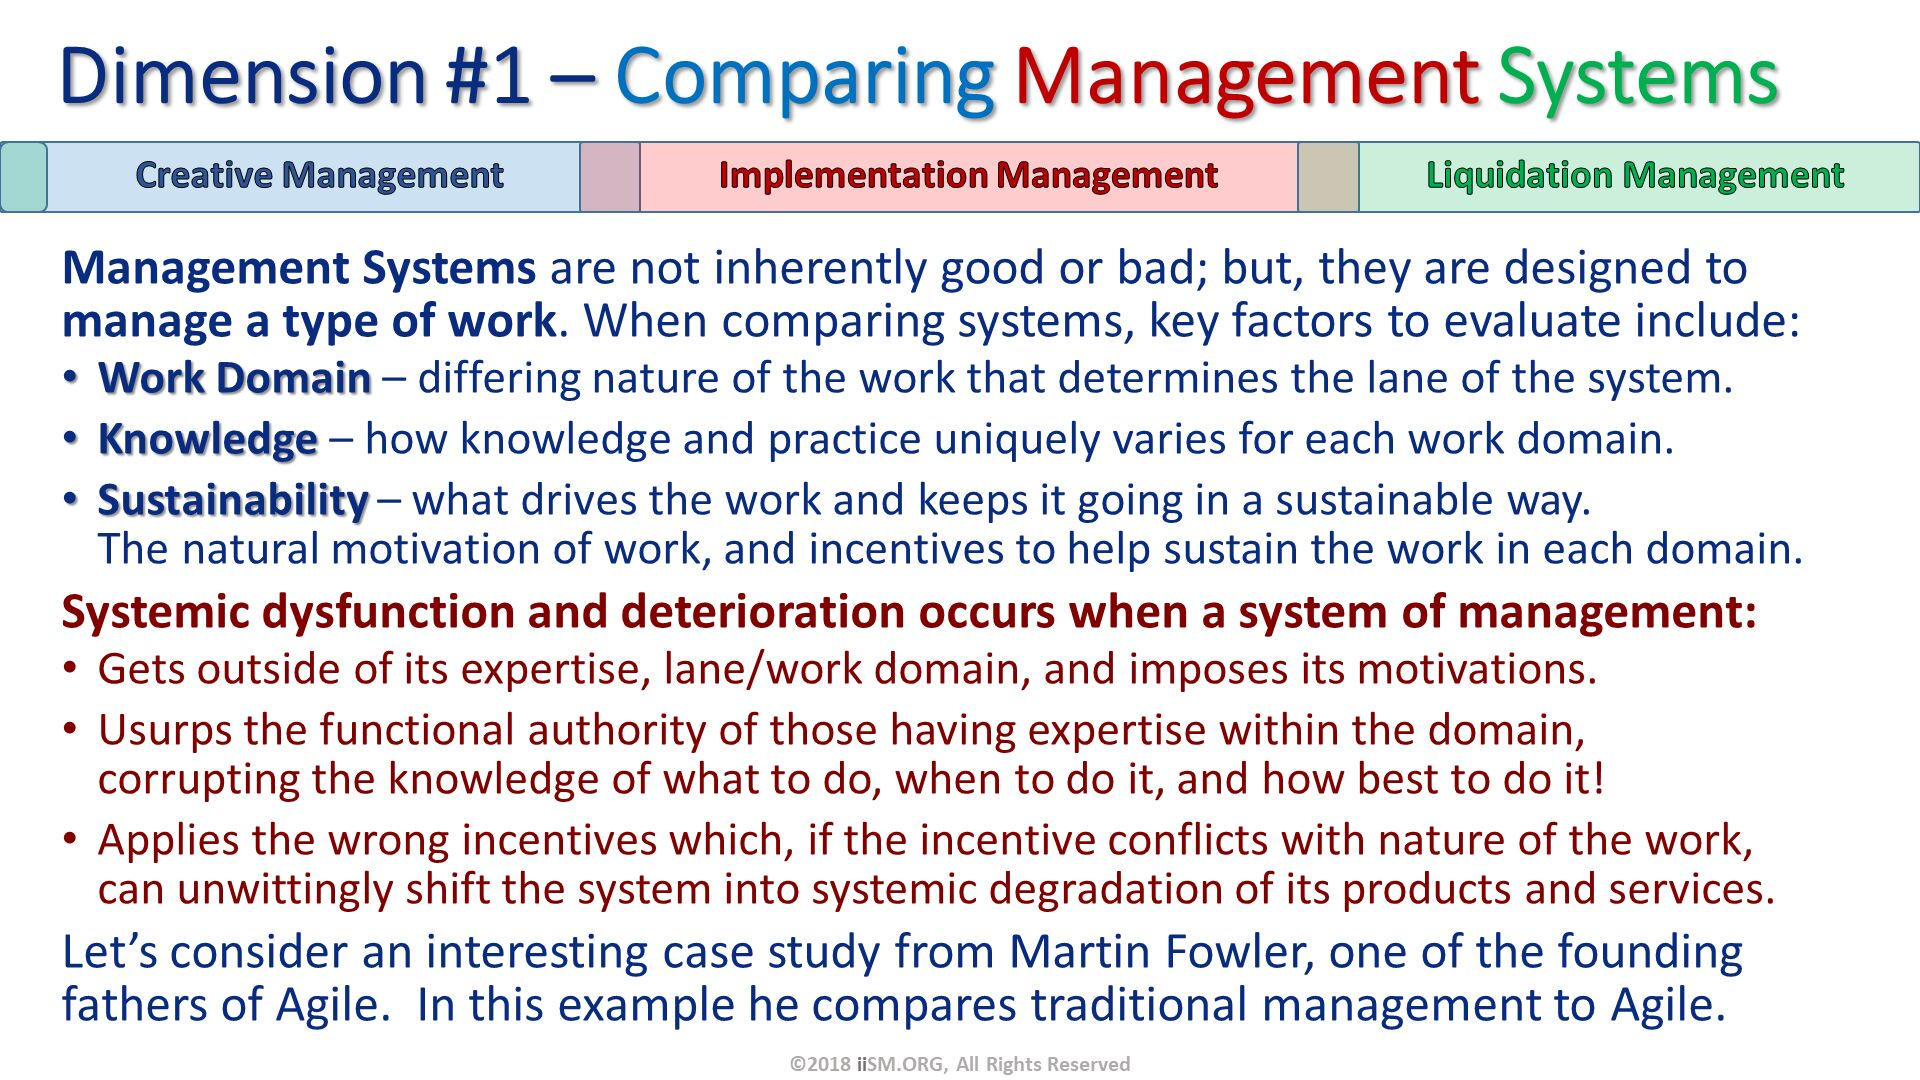 Management Systems are not inherently good or bad; but, they are designed to manage a type of work. When comparing systems, key factors to evaluate include: Work Domain – differing nature of the work that determines the lane of the system. Knowledge – how knowledge and practice uniquely varies for each work domain. Sustainability – what drives the work and keeps it going in a sustainable way.  The natural motivation of work, and incentives to help sustain the work in each domain.  Systemic dysfunction and deterioration occurs when a system of management: Gets outside of its expertise, lane/work domain, and imposes its motivations. Usurps the functional authority of those having expertise within the domain, corrupting the knowledge of what to do, when to do it, and how best to do it! Applies the wrong incentives which, if the incentive conflicts with nature of the work, can unwittingly shift the system into systemic degradation of its products and services. Let's consider an interesting case study from Martin Fowler, one of the founding fathers of Agile.  In this example he compares traditional management to Agile. Dimension #1 – Comparing Management Systems. ©2018 iiSM.ORG, All Rights Reserved.